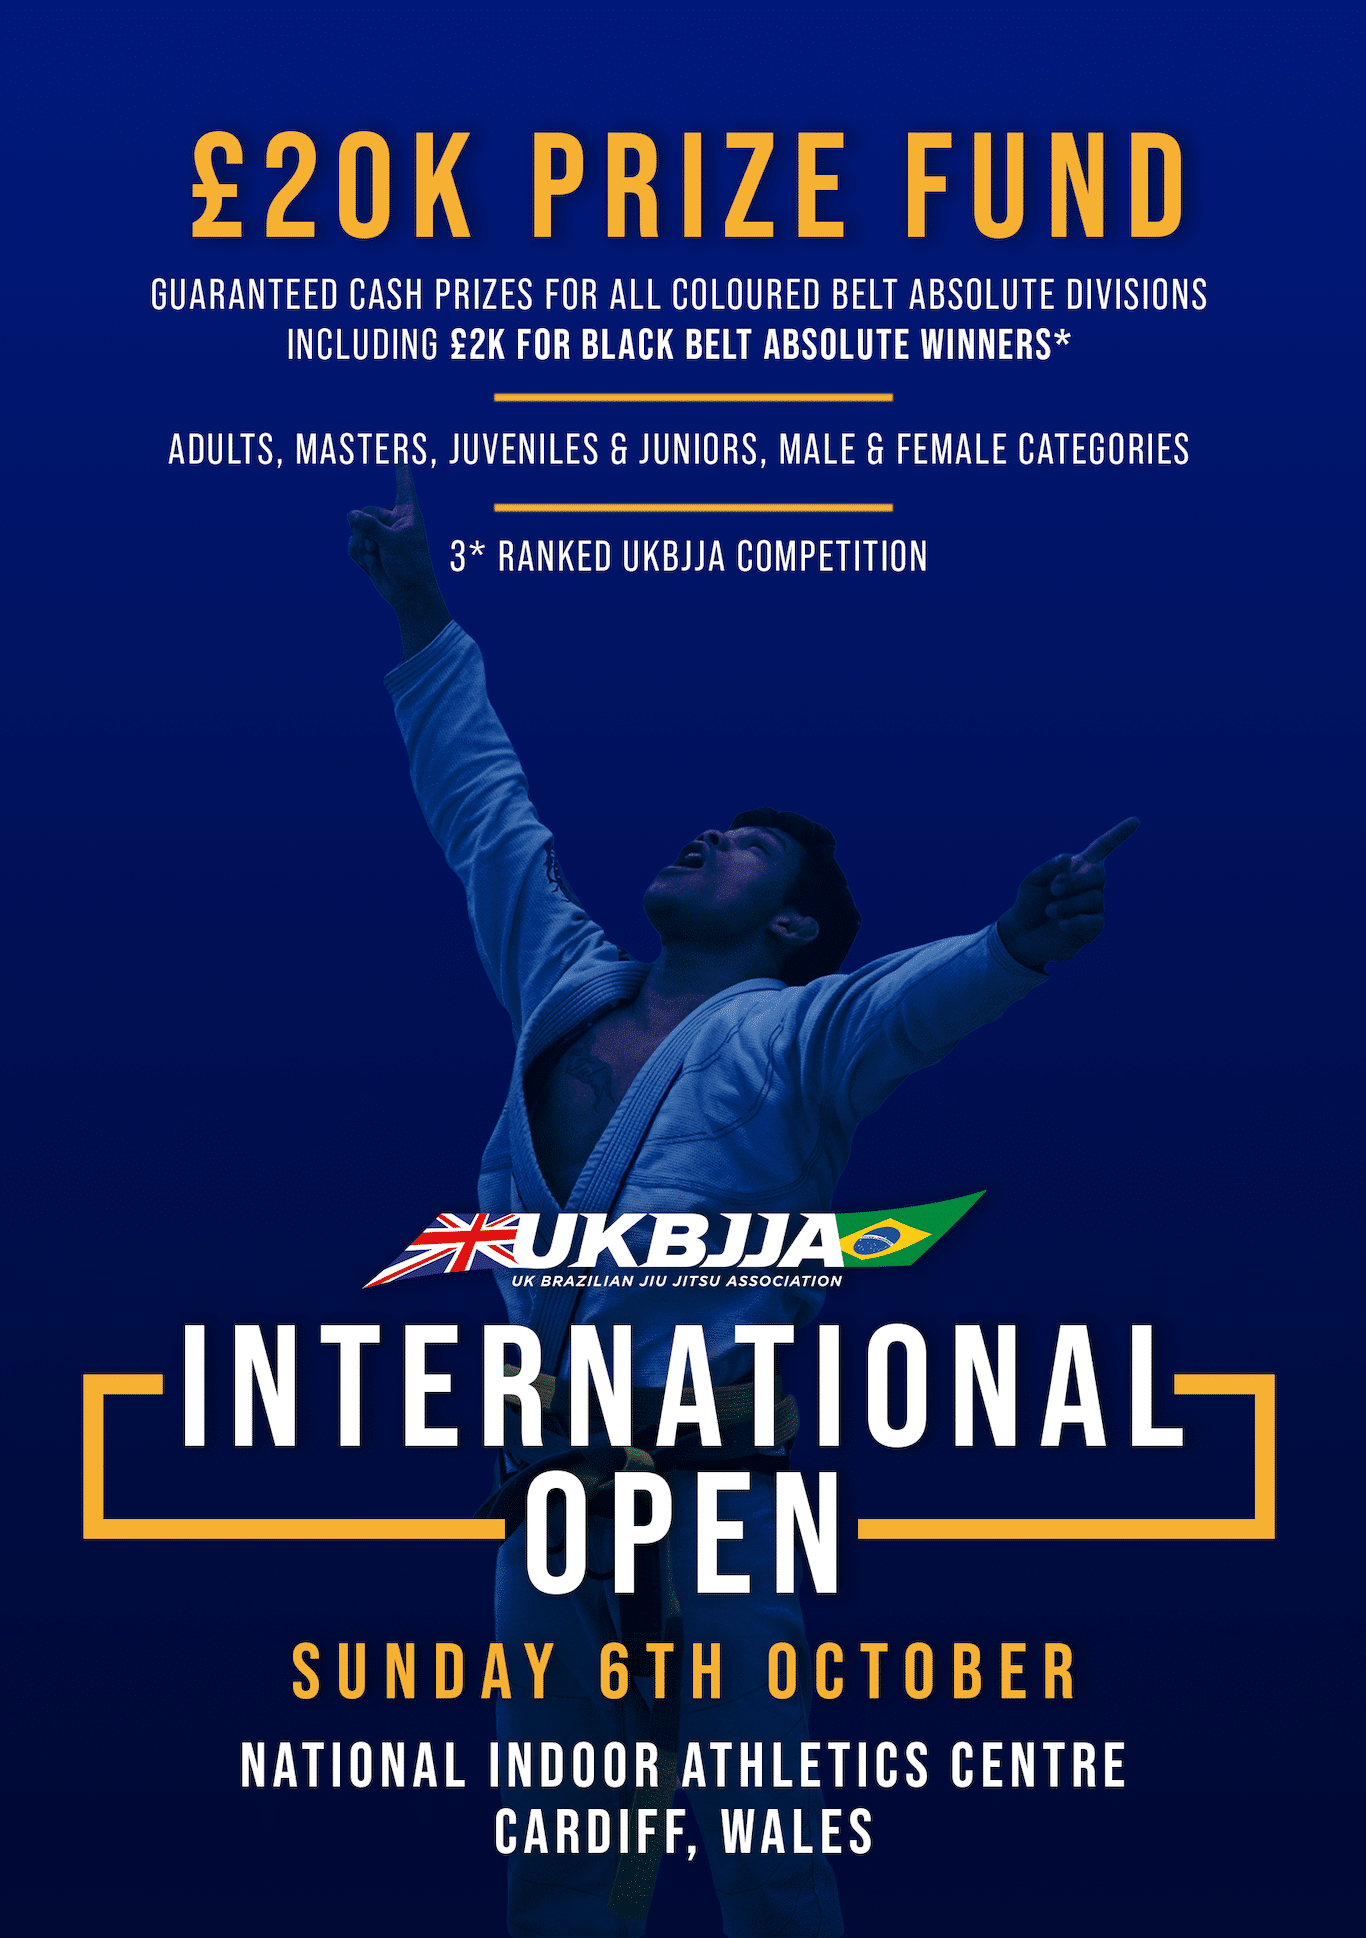 UKBJJA International Open 2019 Brazilian Jiu Jitsu Tournament